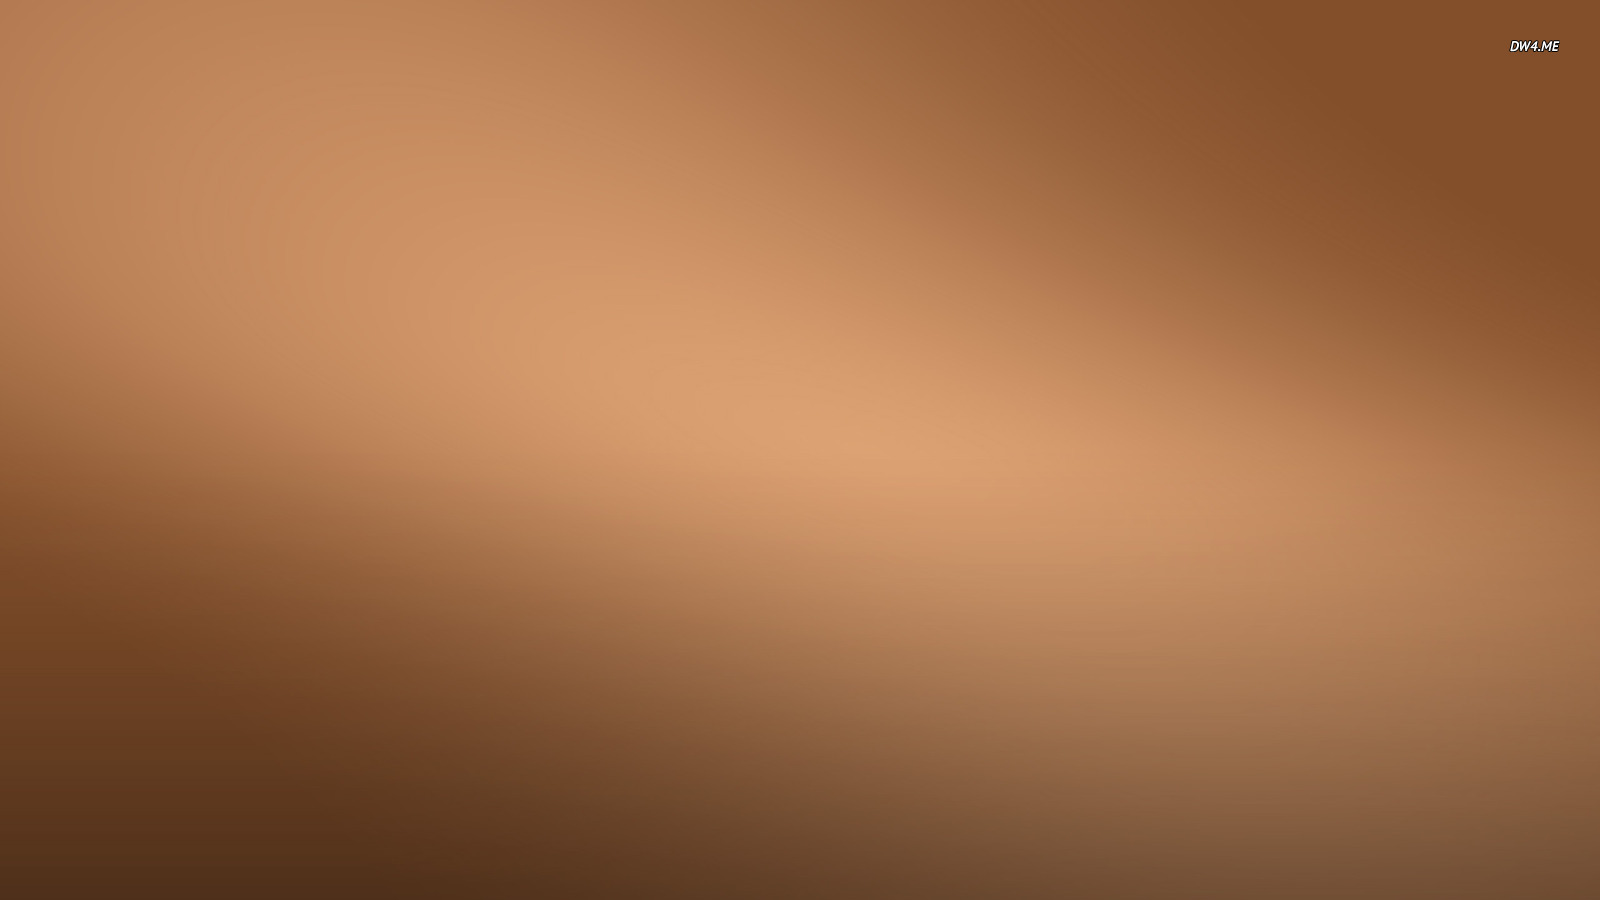 Bronze wallpaper   Minimalistic wallpapers   387 1600x900